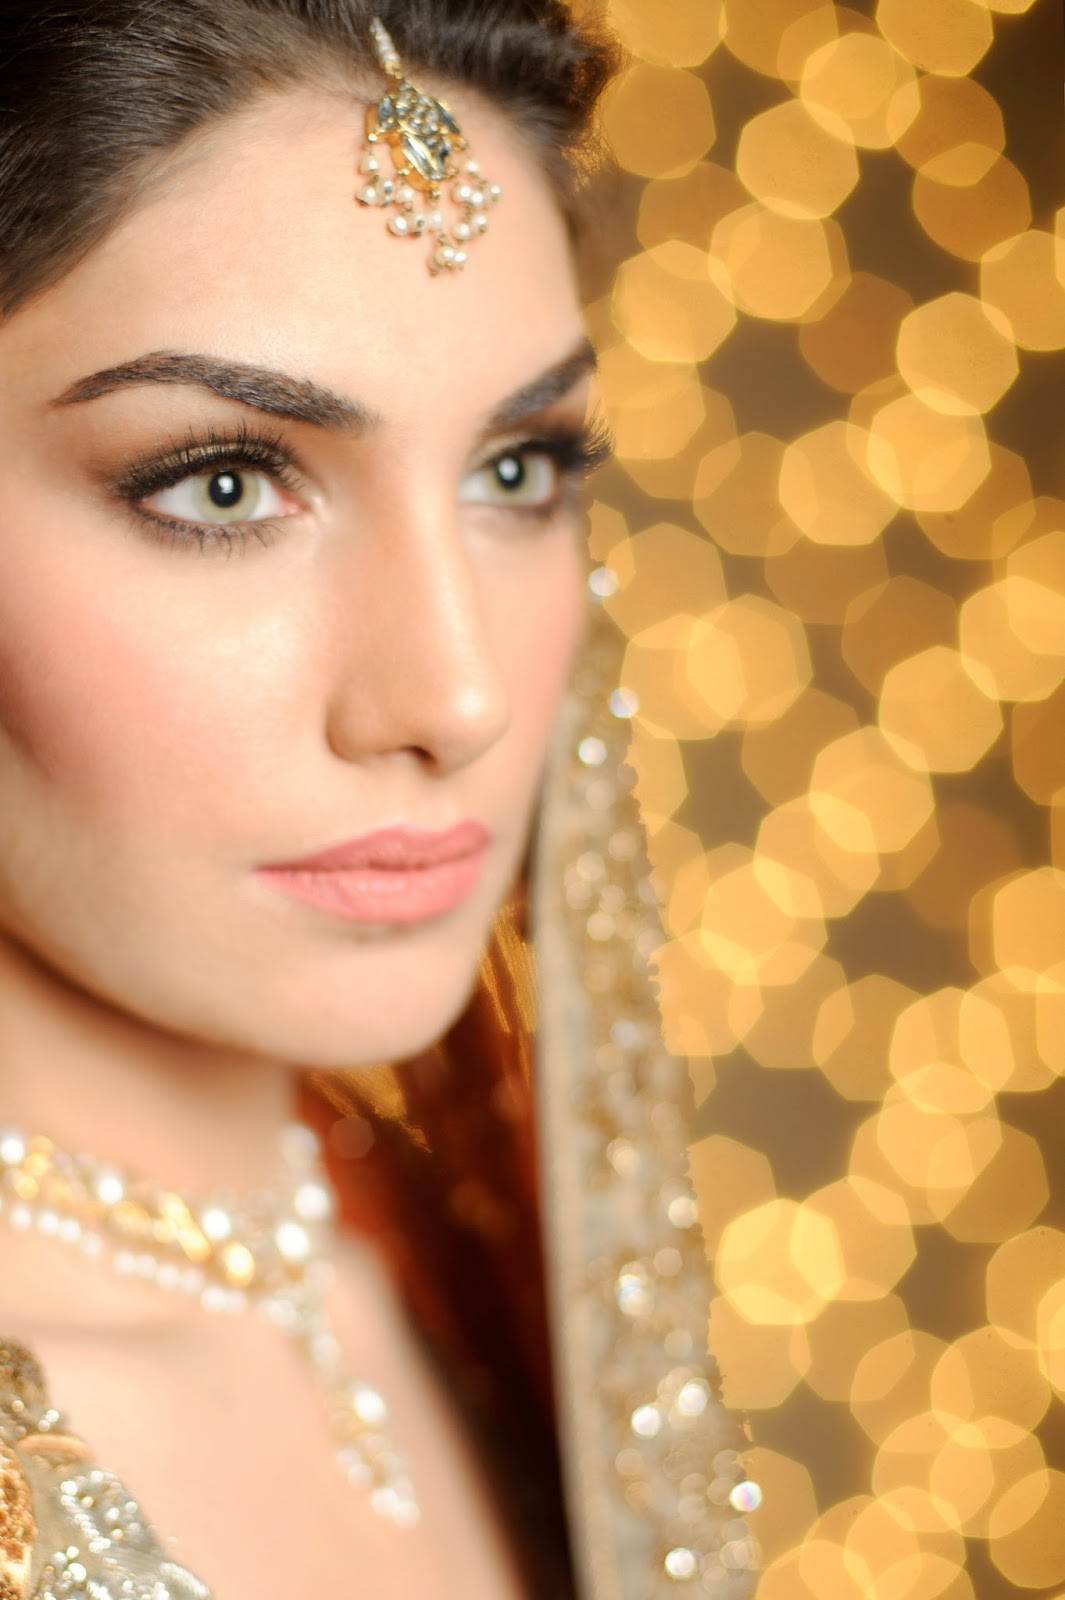 Hair And Make-up by Bina Khan